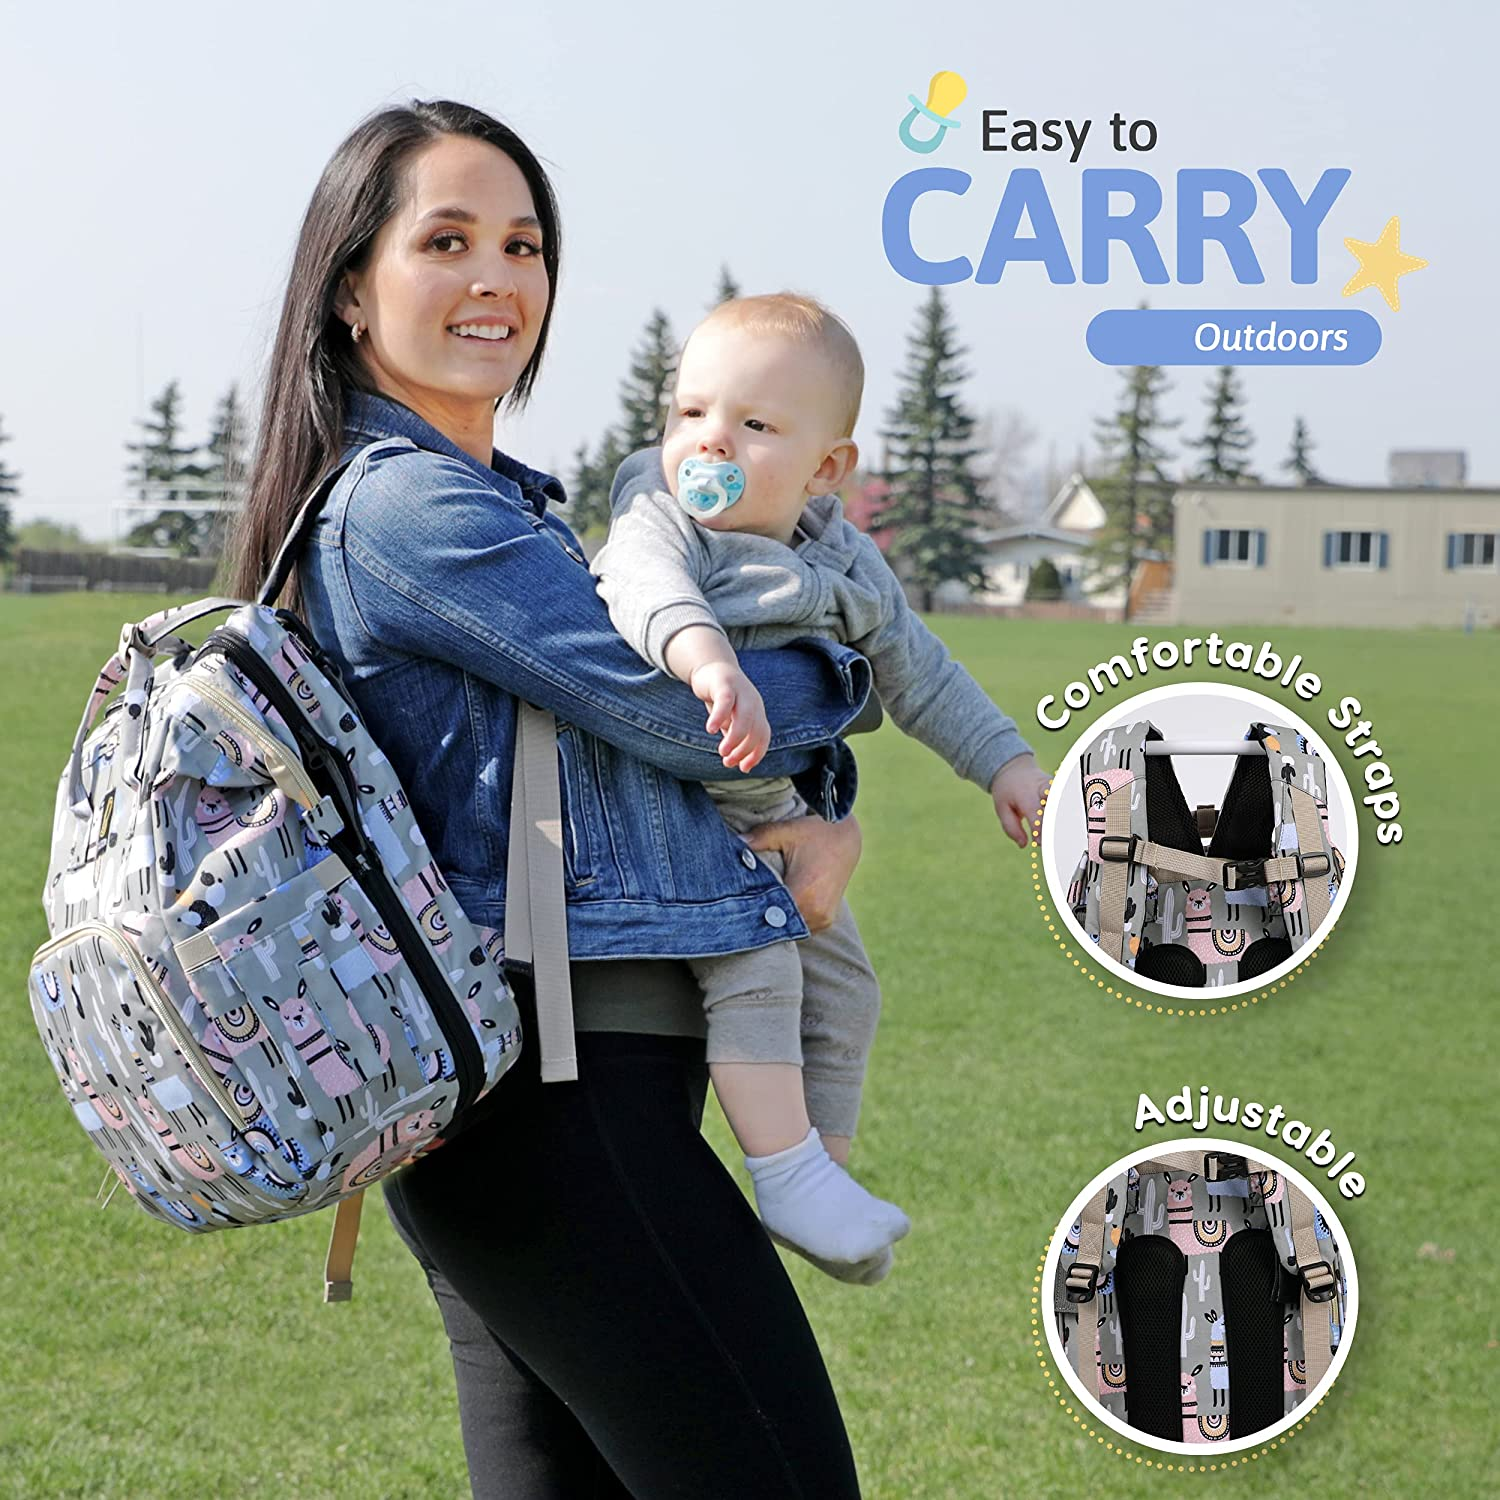 CAUJON Baby Diaper Bag Backpack - 3 in 1 Multifunctional Diaper Bag with Changing Station, Travel Friendly, Large Capacity, Waterproof